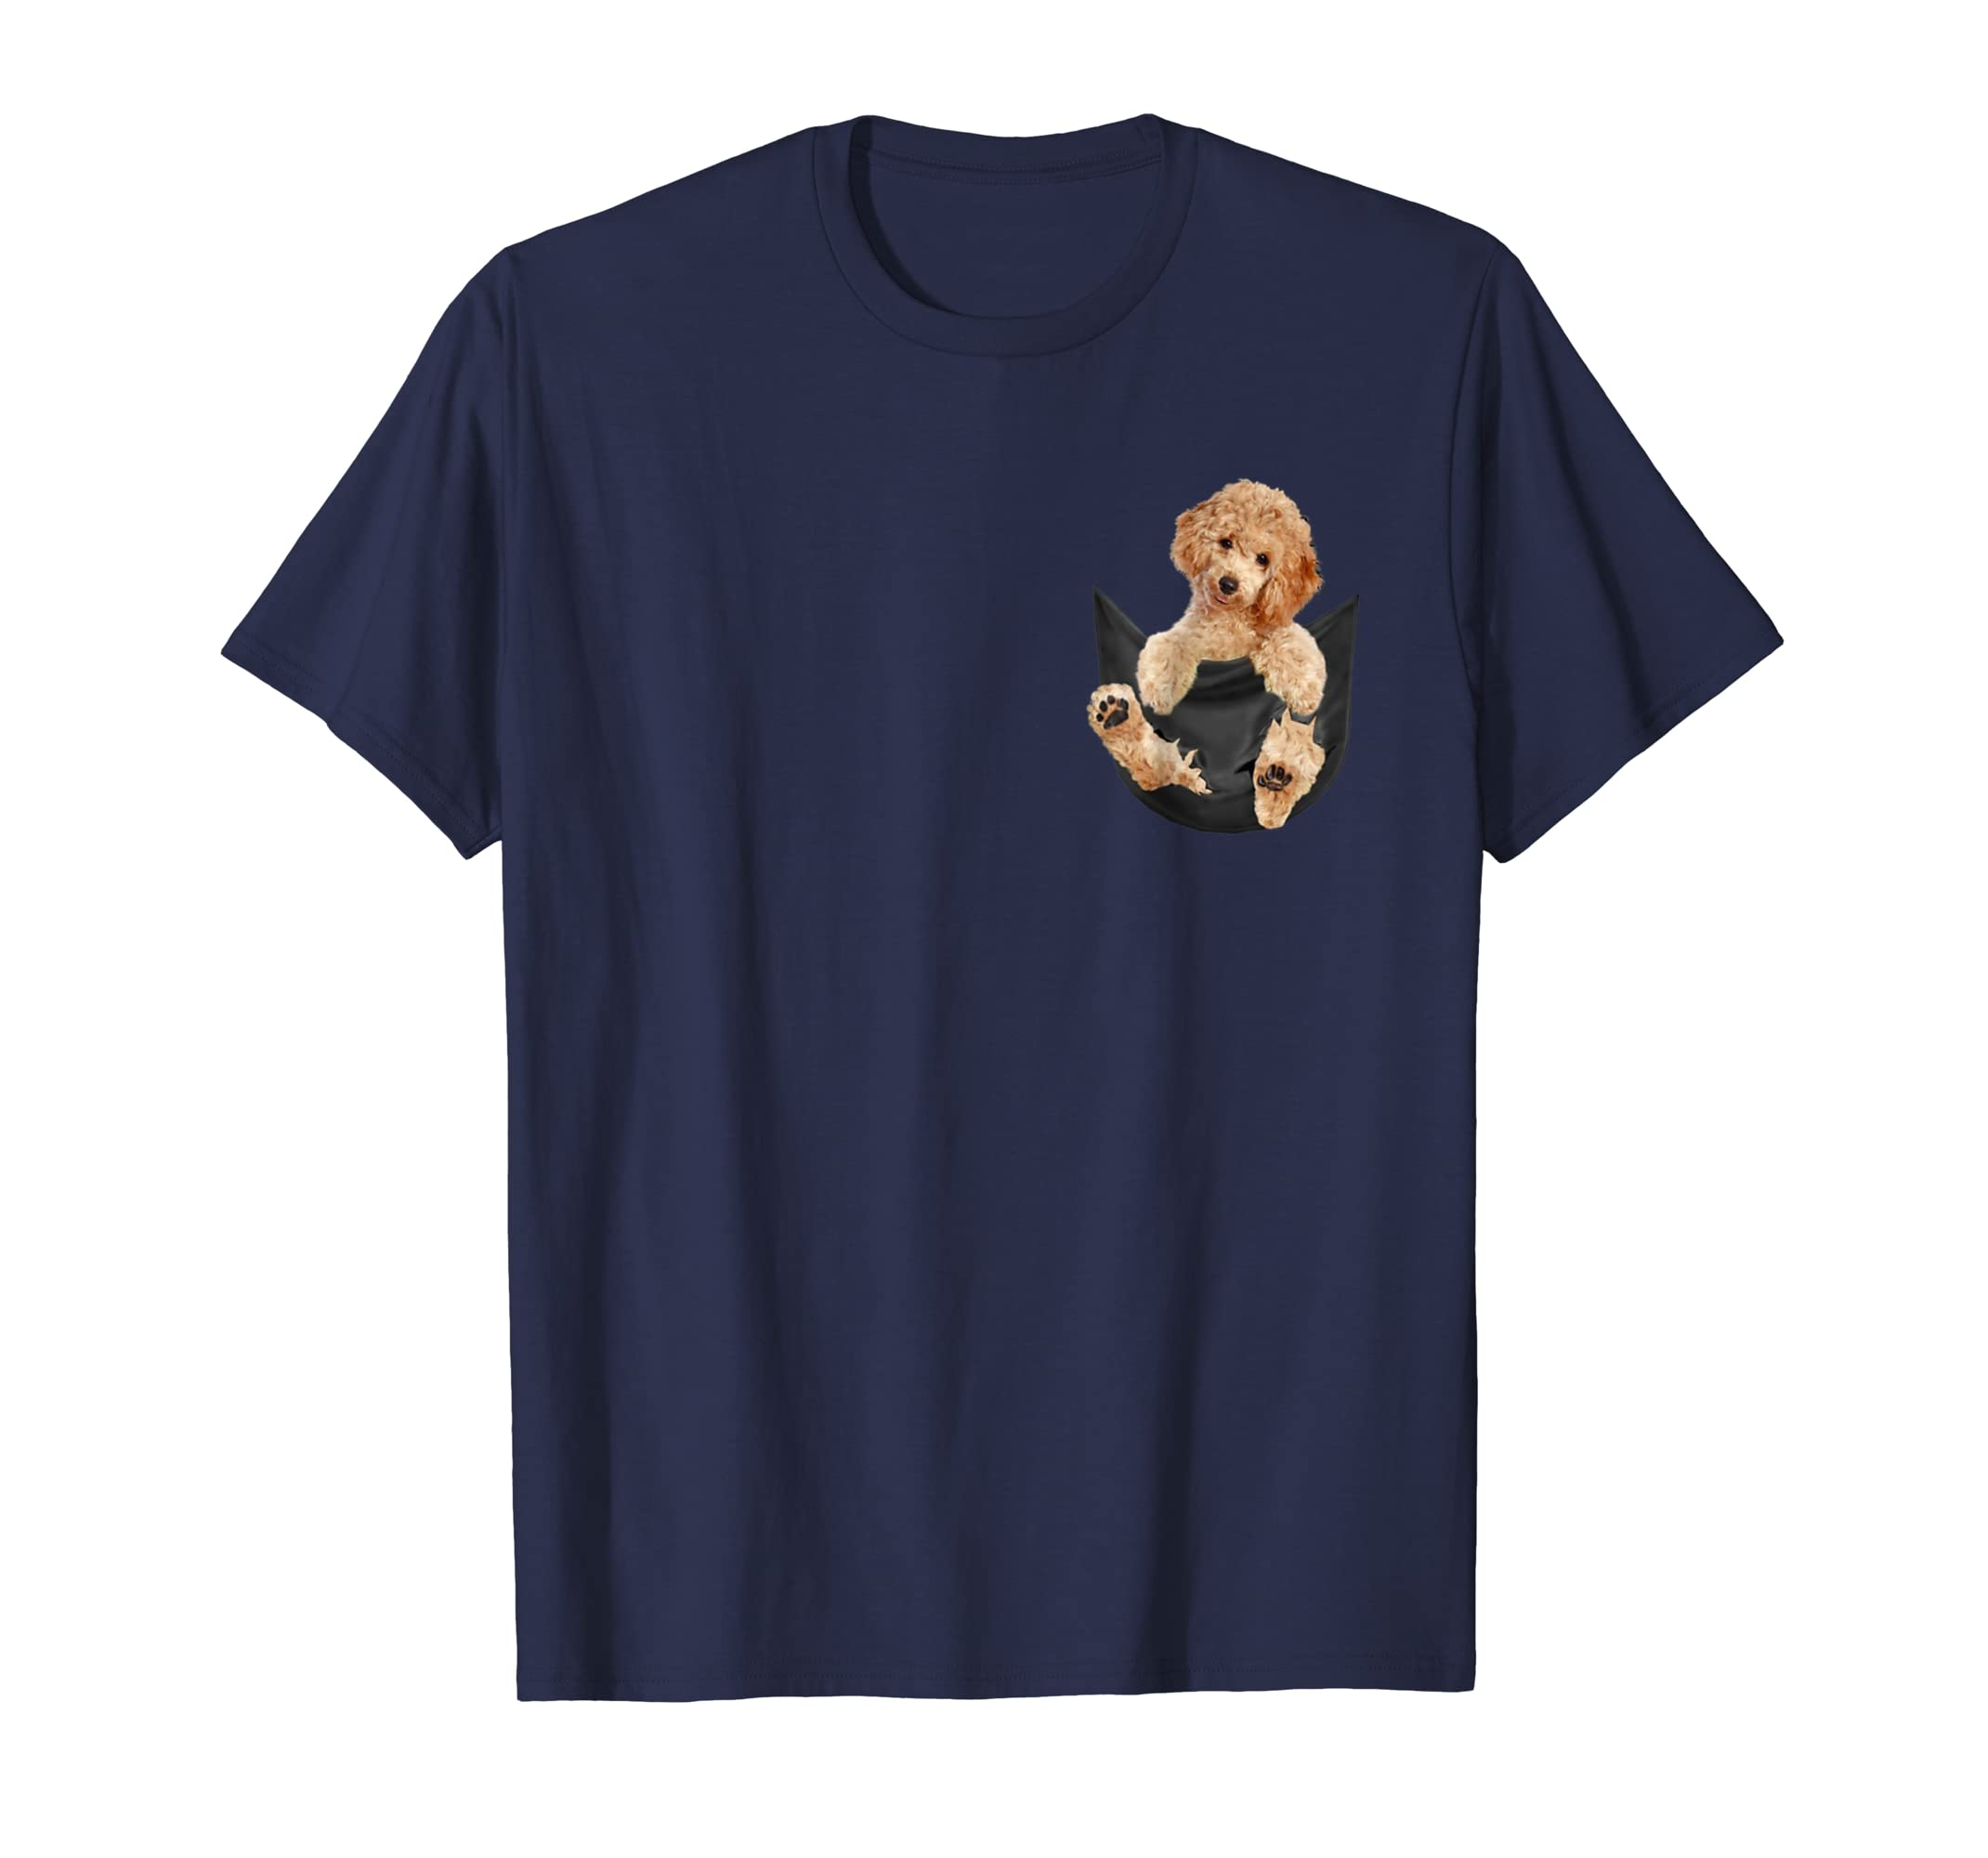 Poodle in pocket tee shirts-azvn